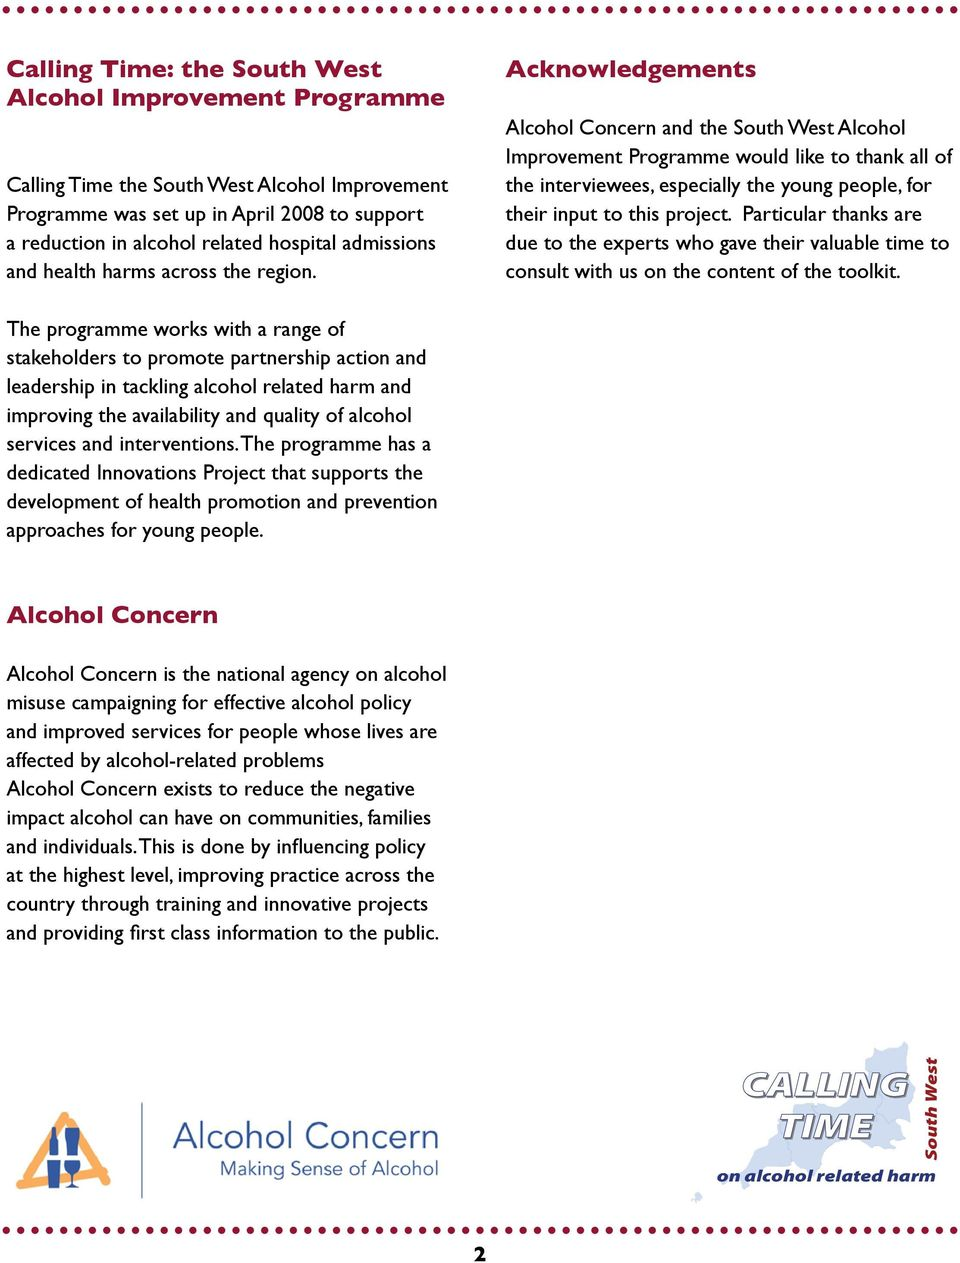 Acknowledgements Alcohol Concern and the South West Alcohol Improvement Programme would like to thank all of the interviewees, especially the young people, for their input to this project.